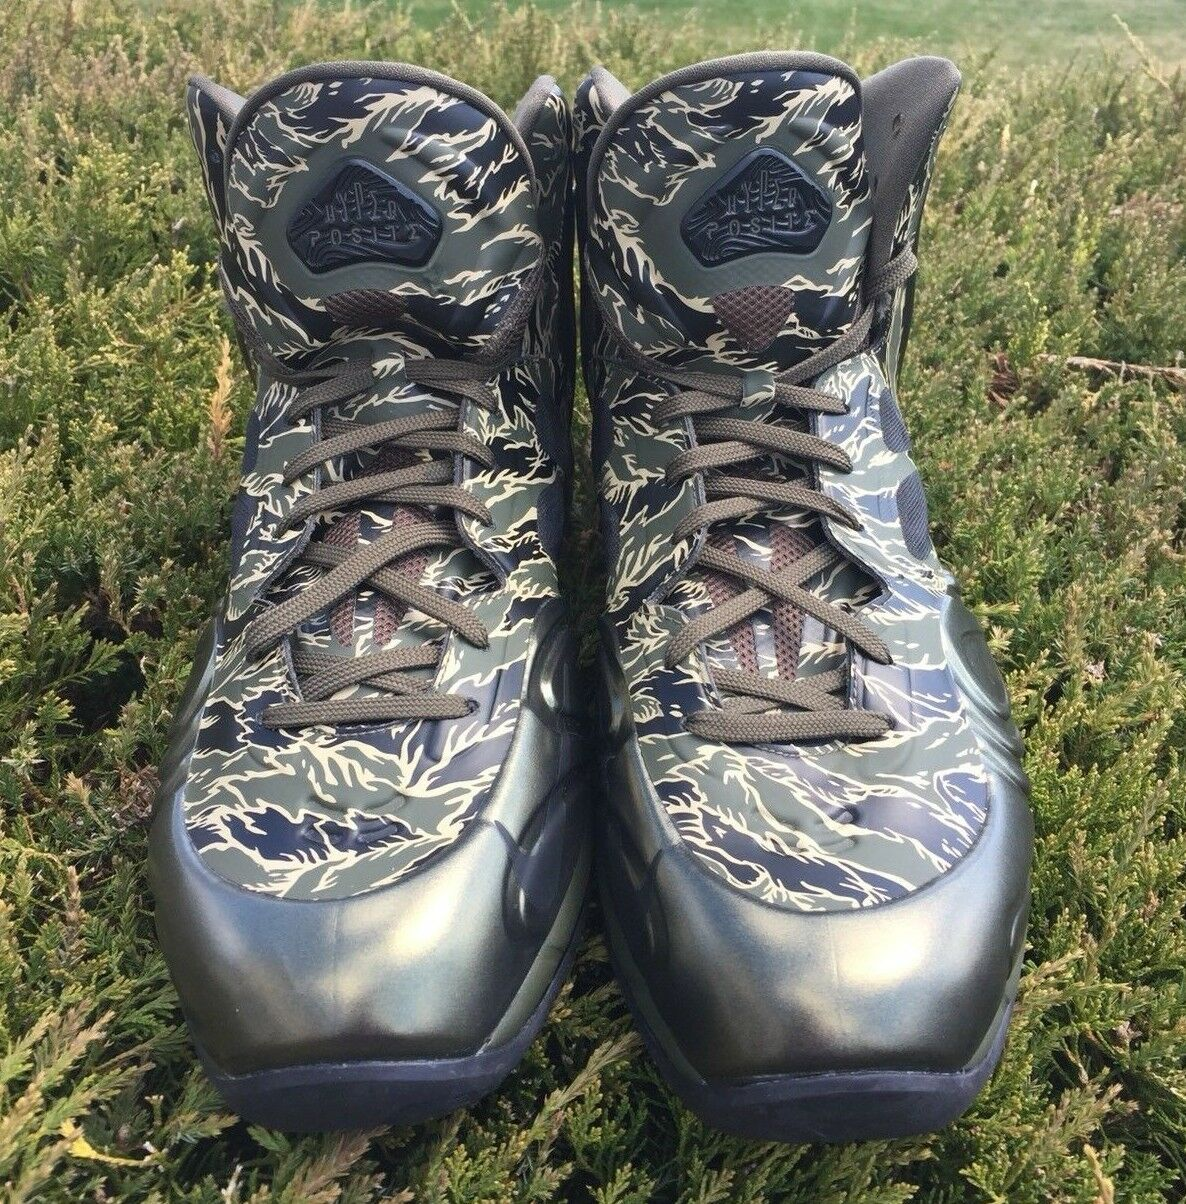 Nike Air Max Hyperposite Tiger Camo 524862-300 US Comfortable best-selling model of the brand Great discount